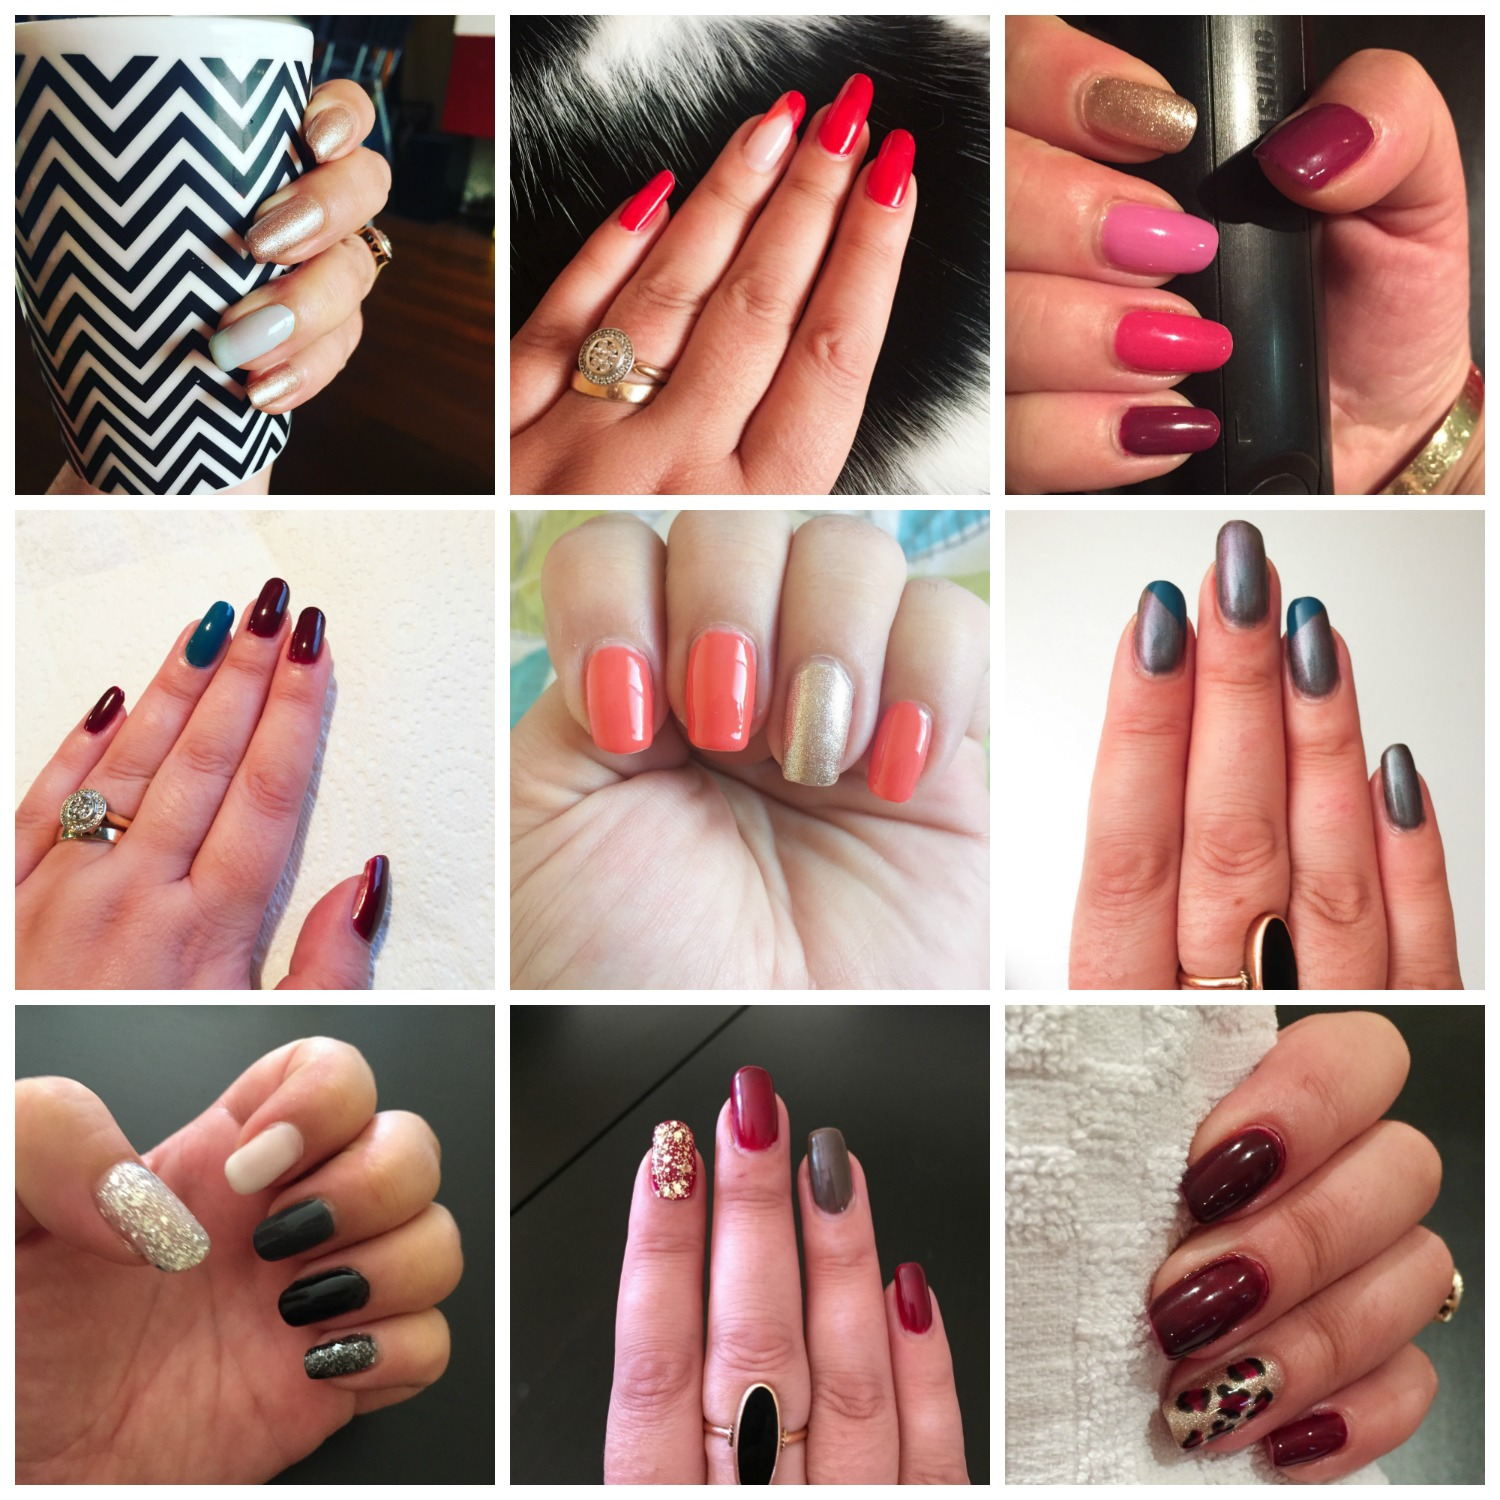 DIY: At Home Gel/Shellac Manicures {Part Two - Everything I Wished I Knew Before I Started Plus Tonnes of Tips}